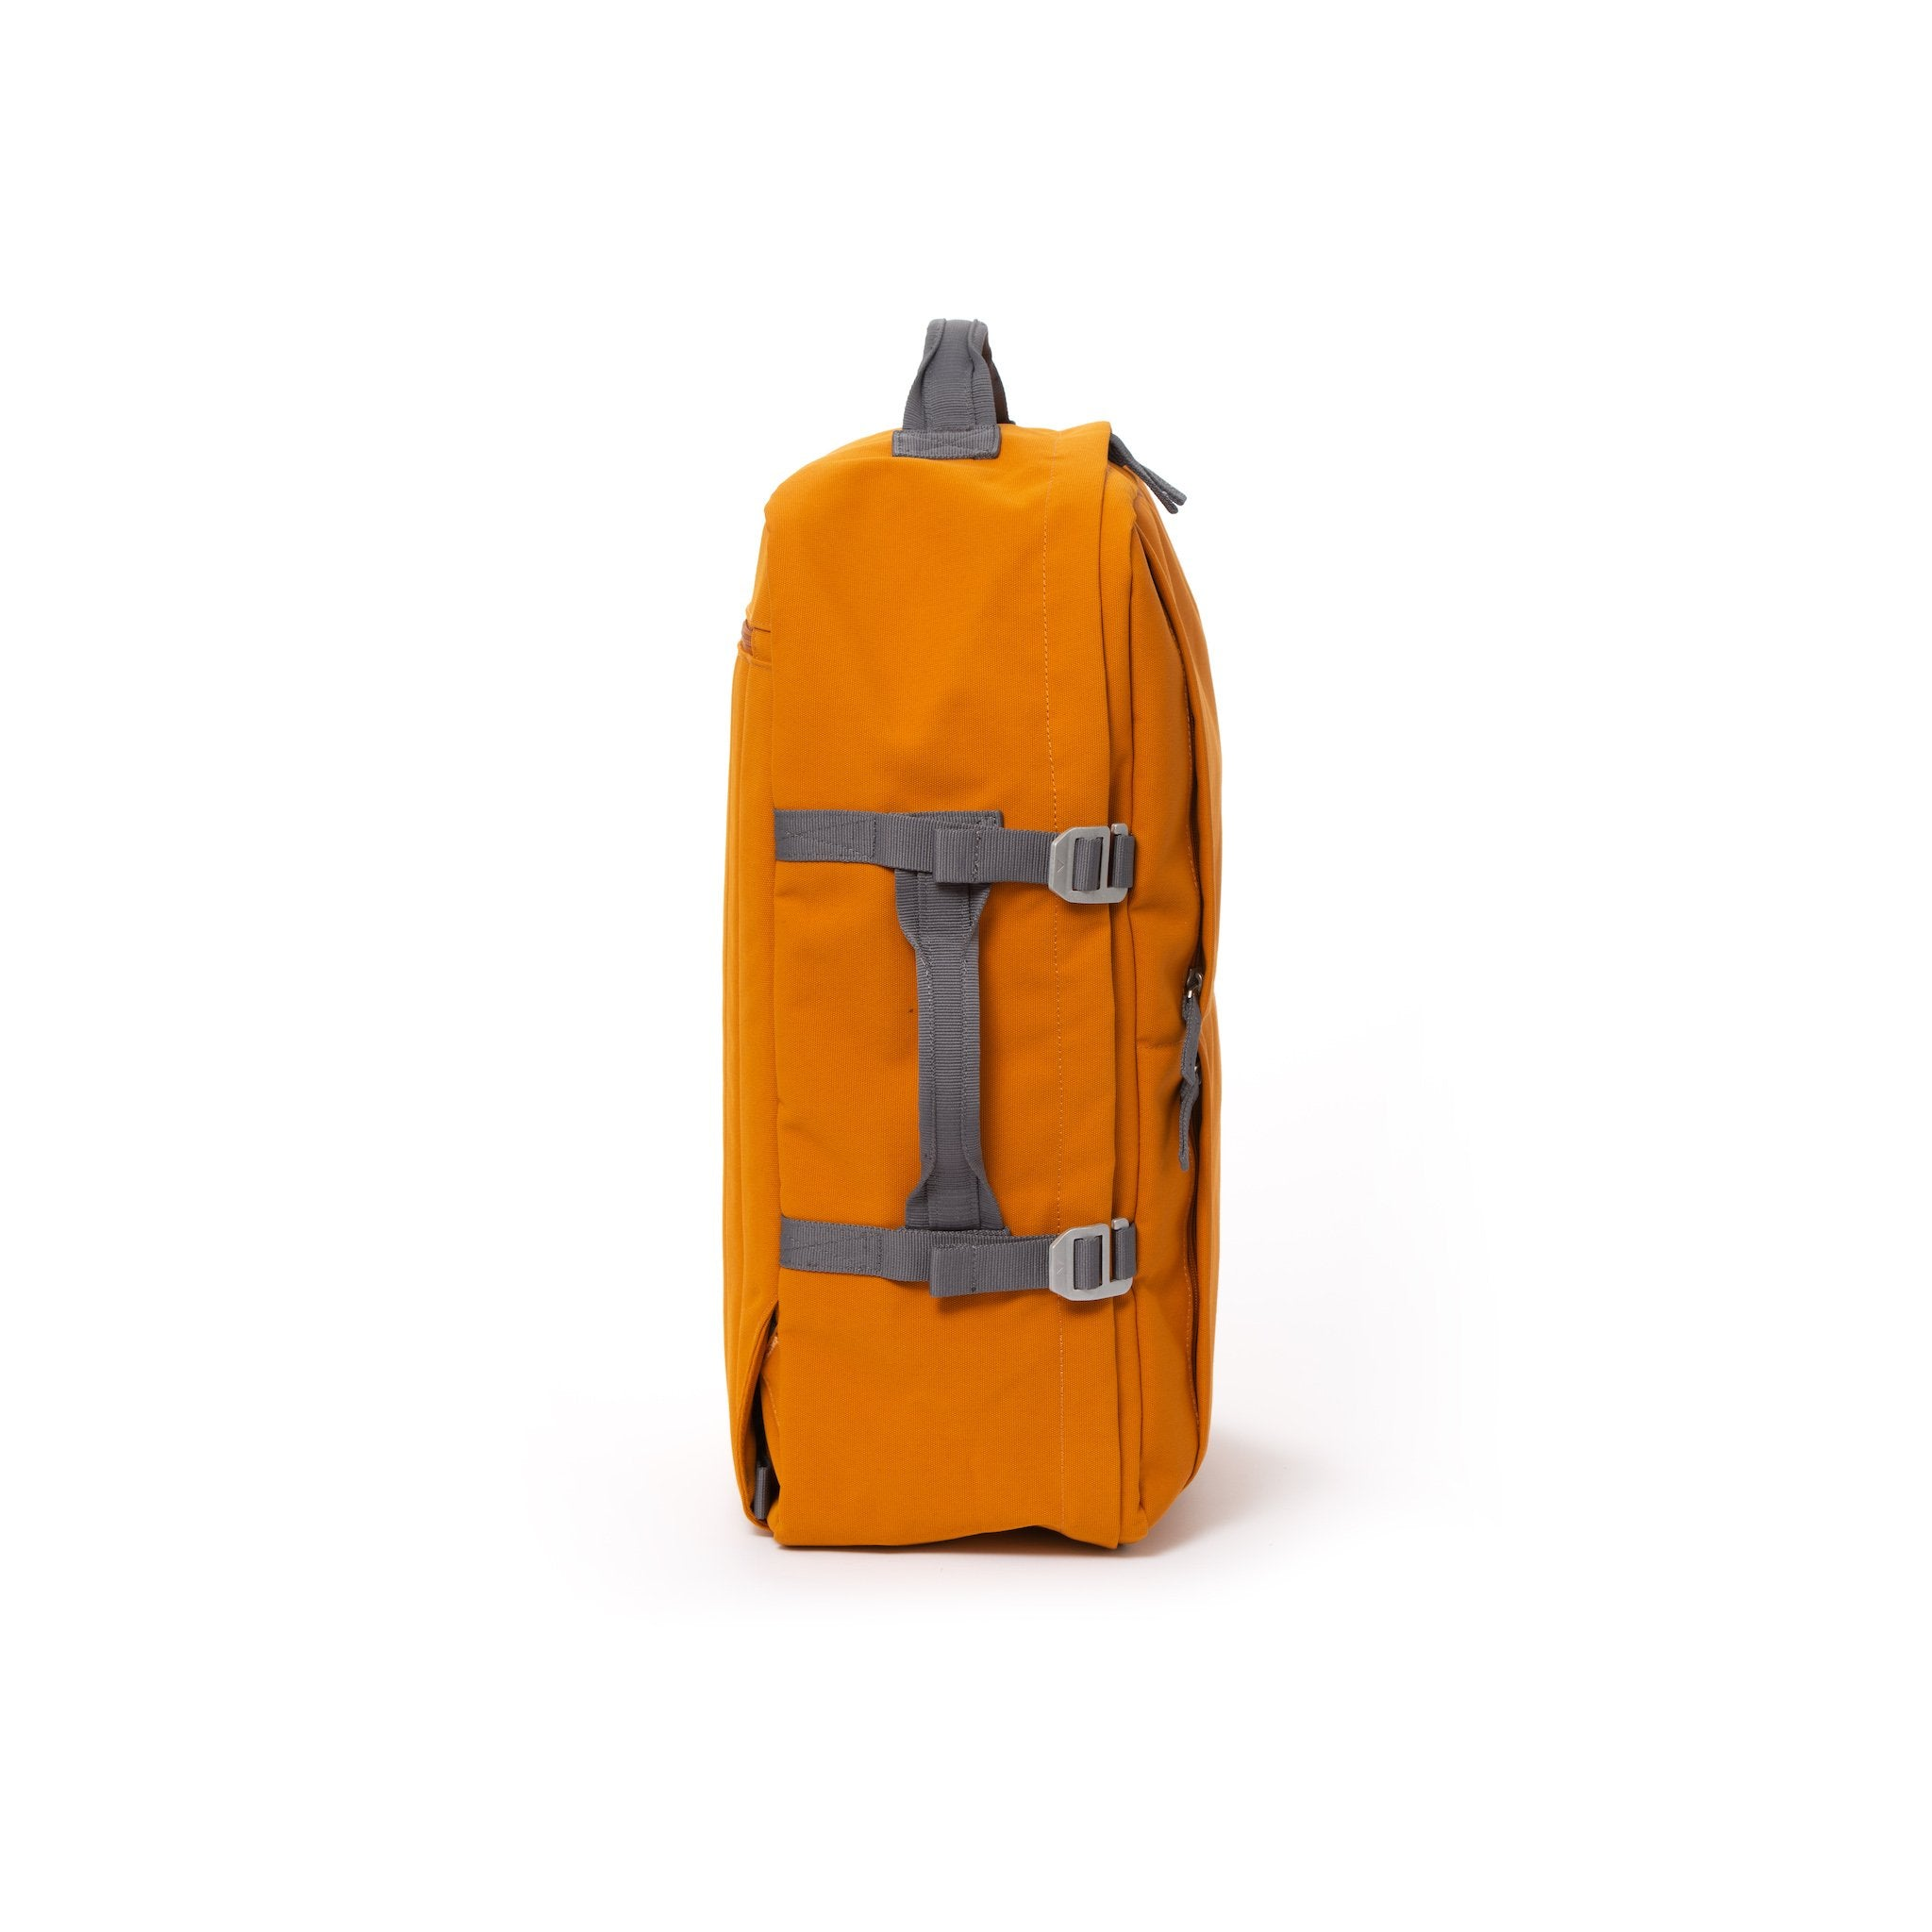 Orange recycled canvas travel backpack with compression side straps.